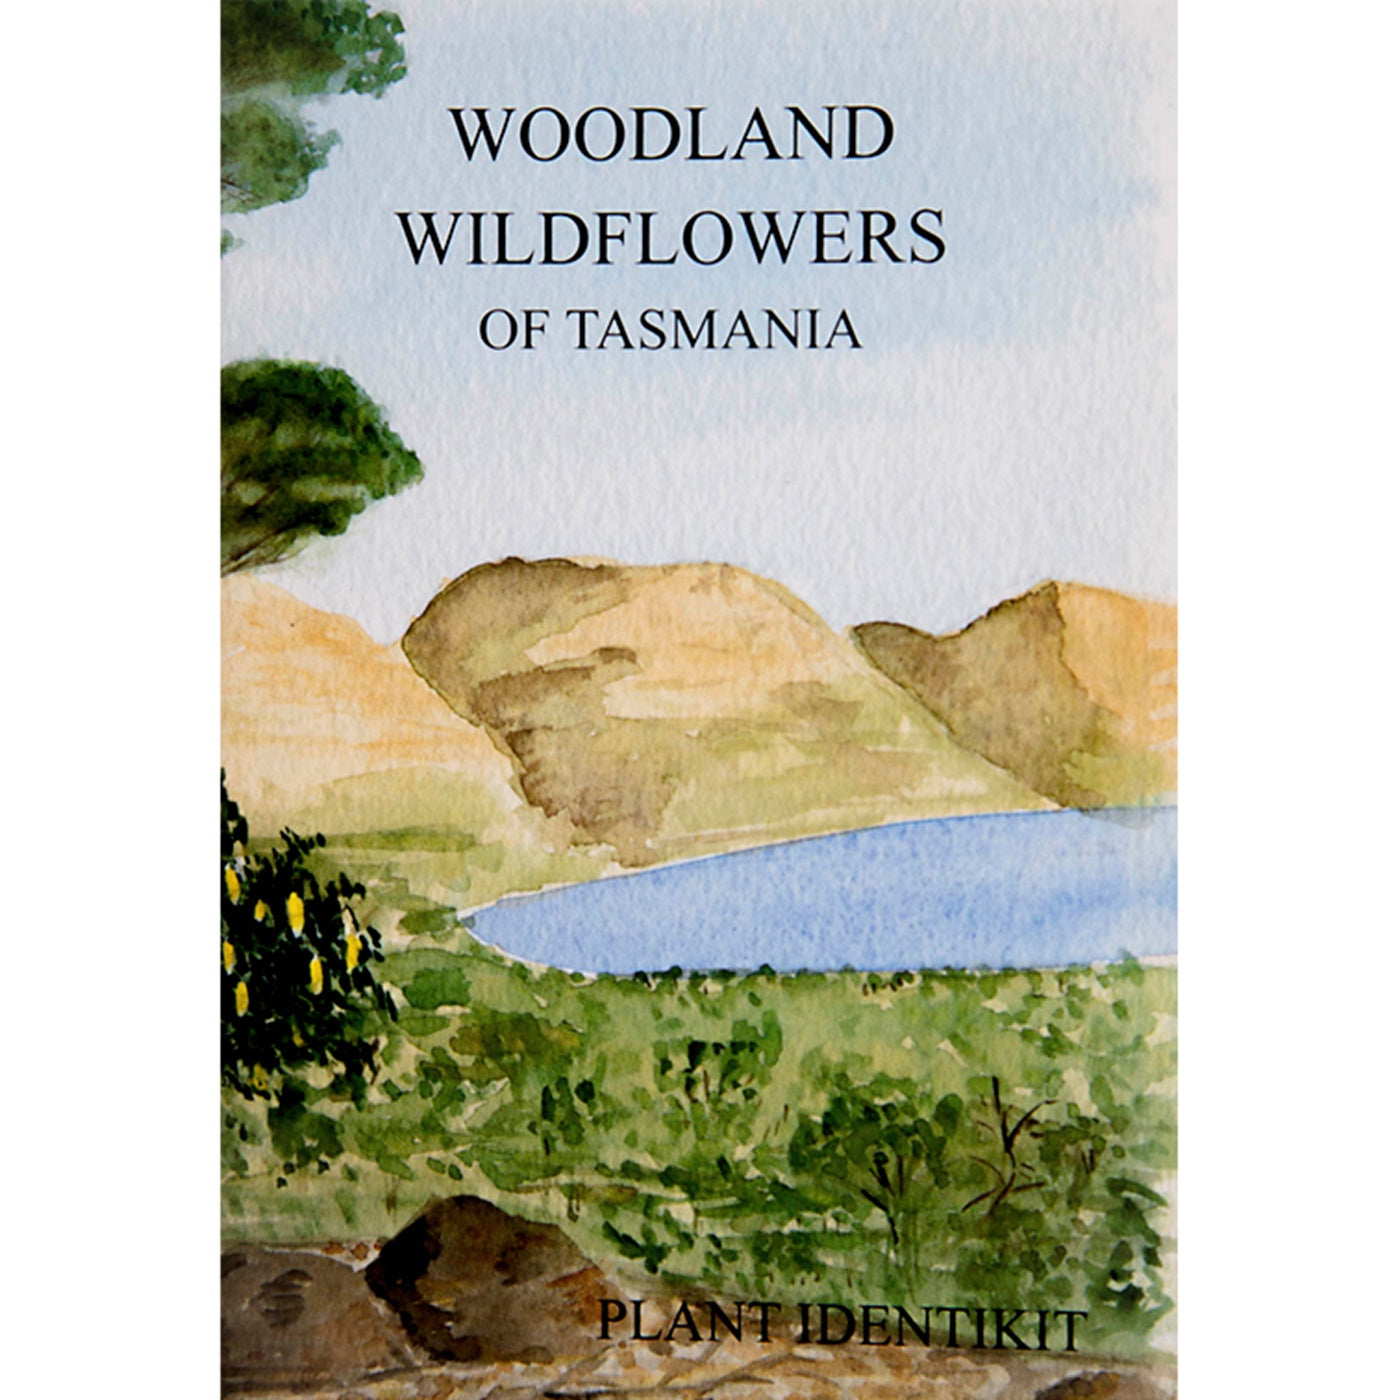 Plant Identikit - Woodland Wildflowers of Tasmania